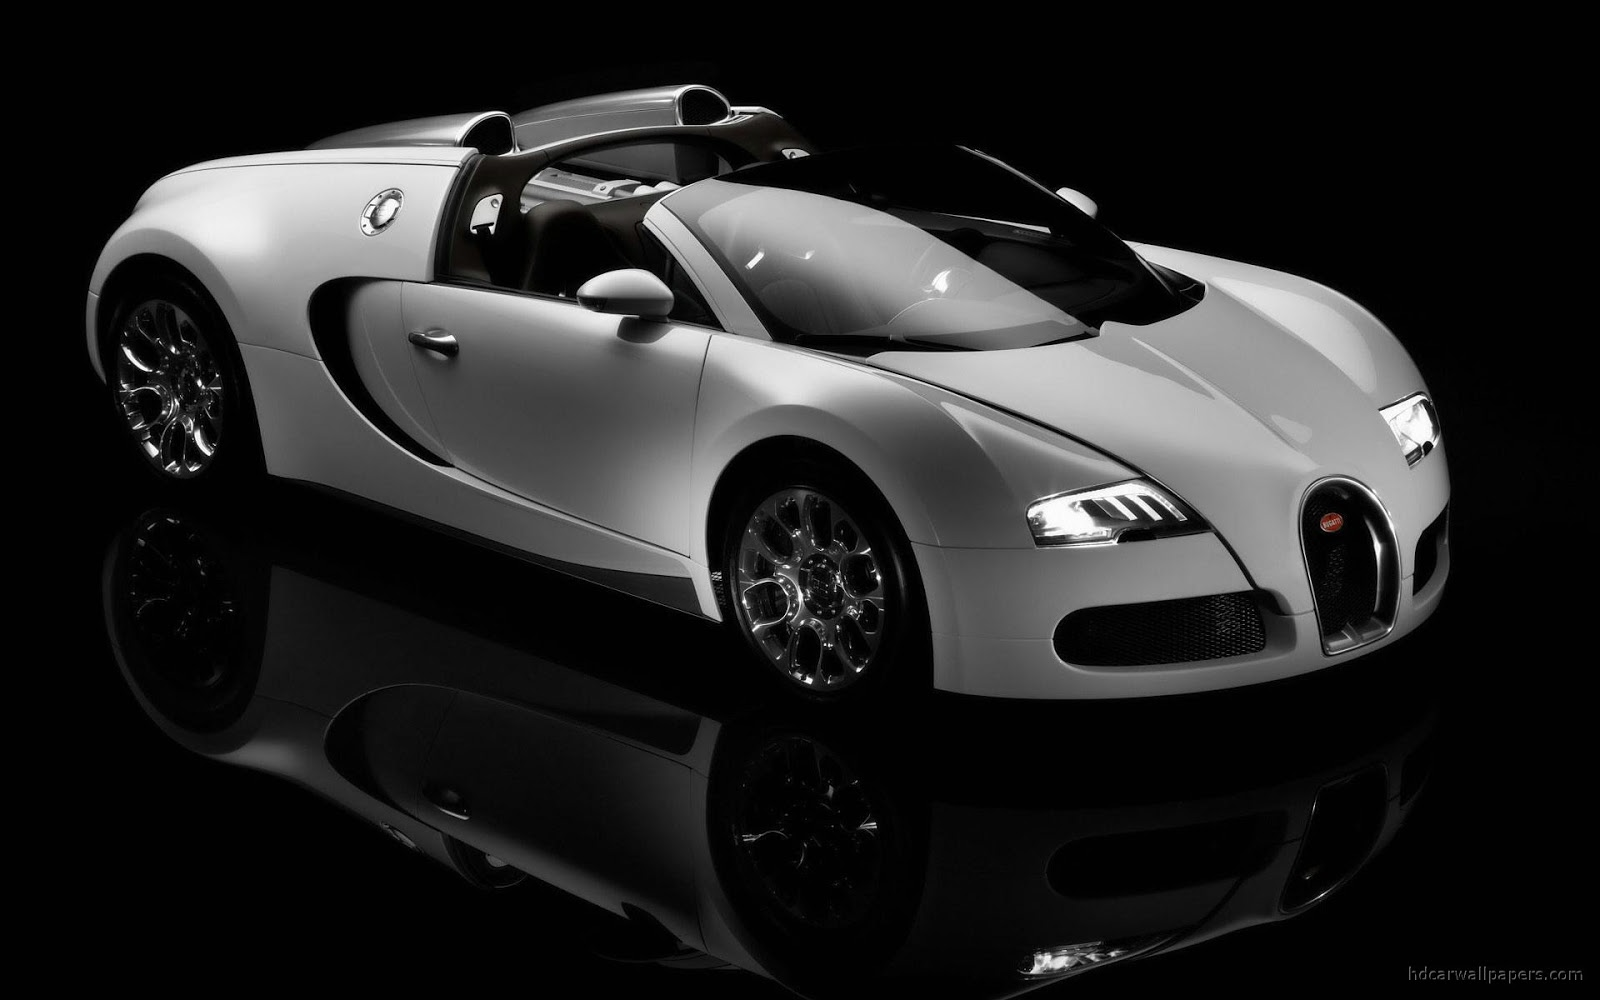 Wallpaper Bugatti Veyron Super Sport: HD Wallpapers: BUGATTI VEYRON HD WALLPAPERS